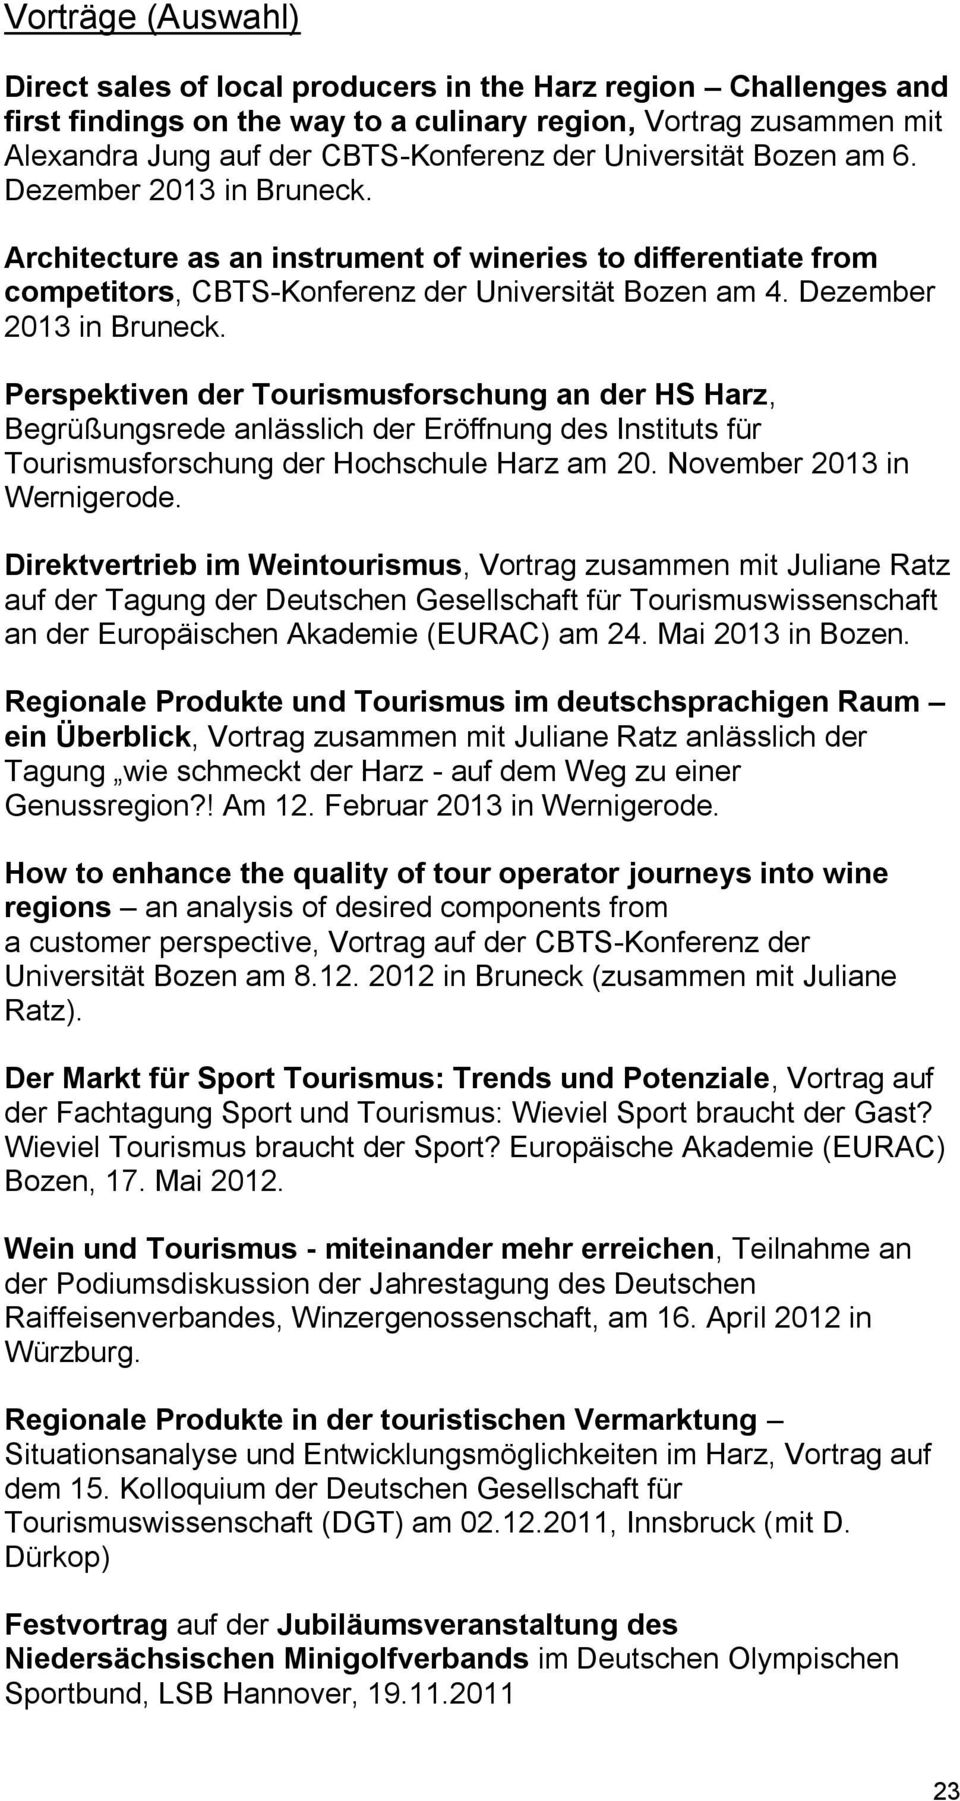 Architecture as an instrument of wineries to differentiate from competitors, CBTS-Konferenz der Universität Bozen am 4. Dezember 2013 in Bruneck.